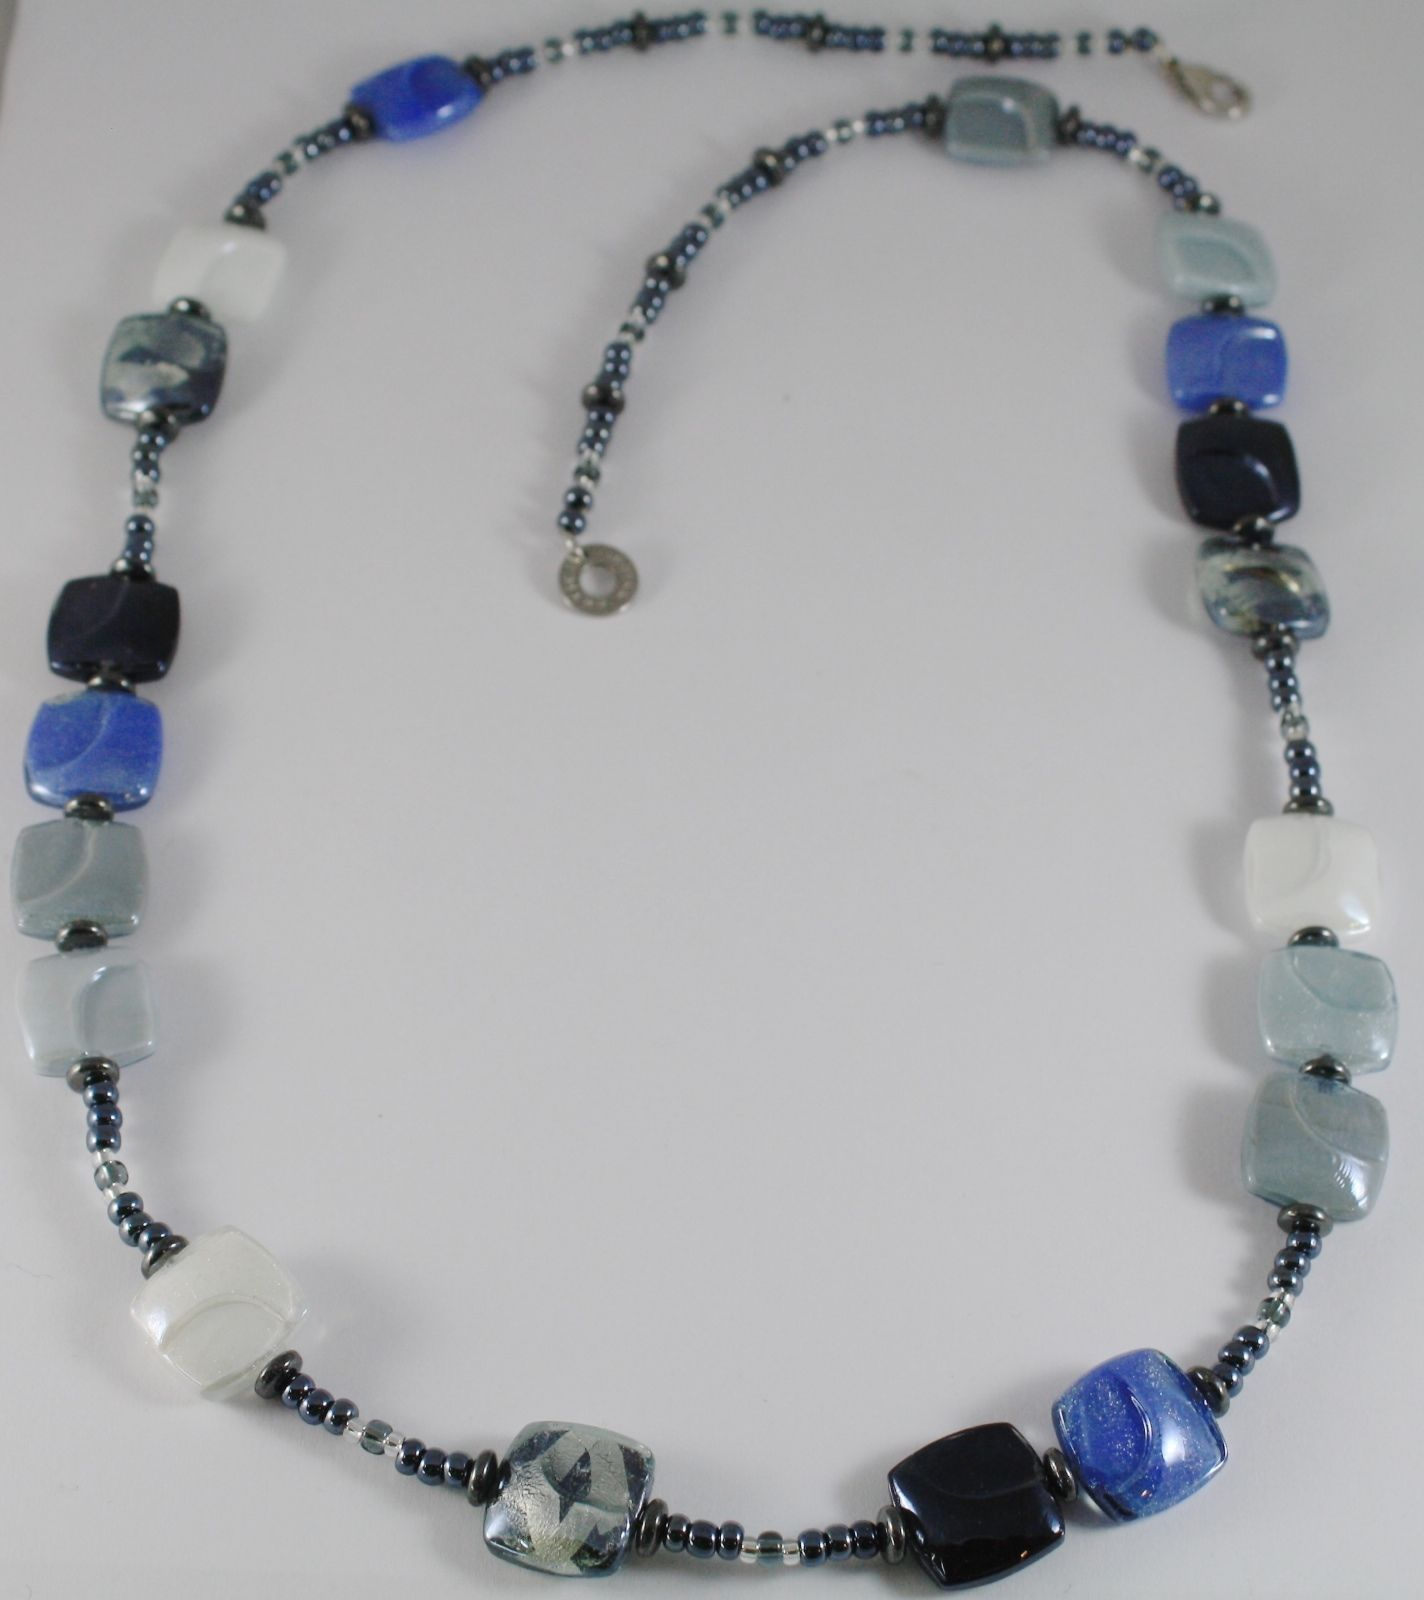 ANTICA MURRINA VENEZIA LONG 80 CM NECKLACE GRAY WITHE BLUE SQUARE SQUARES